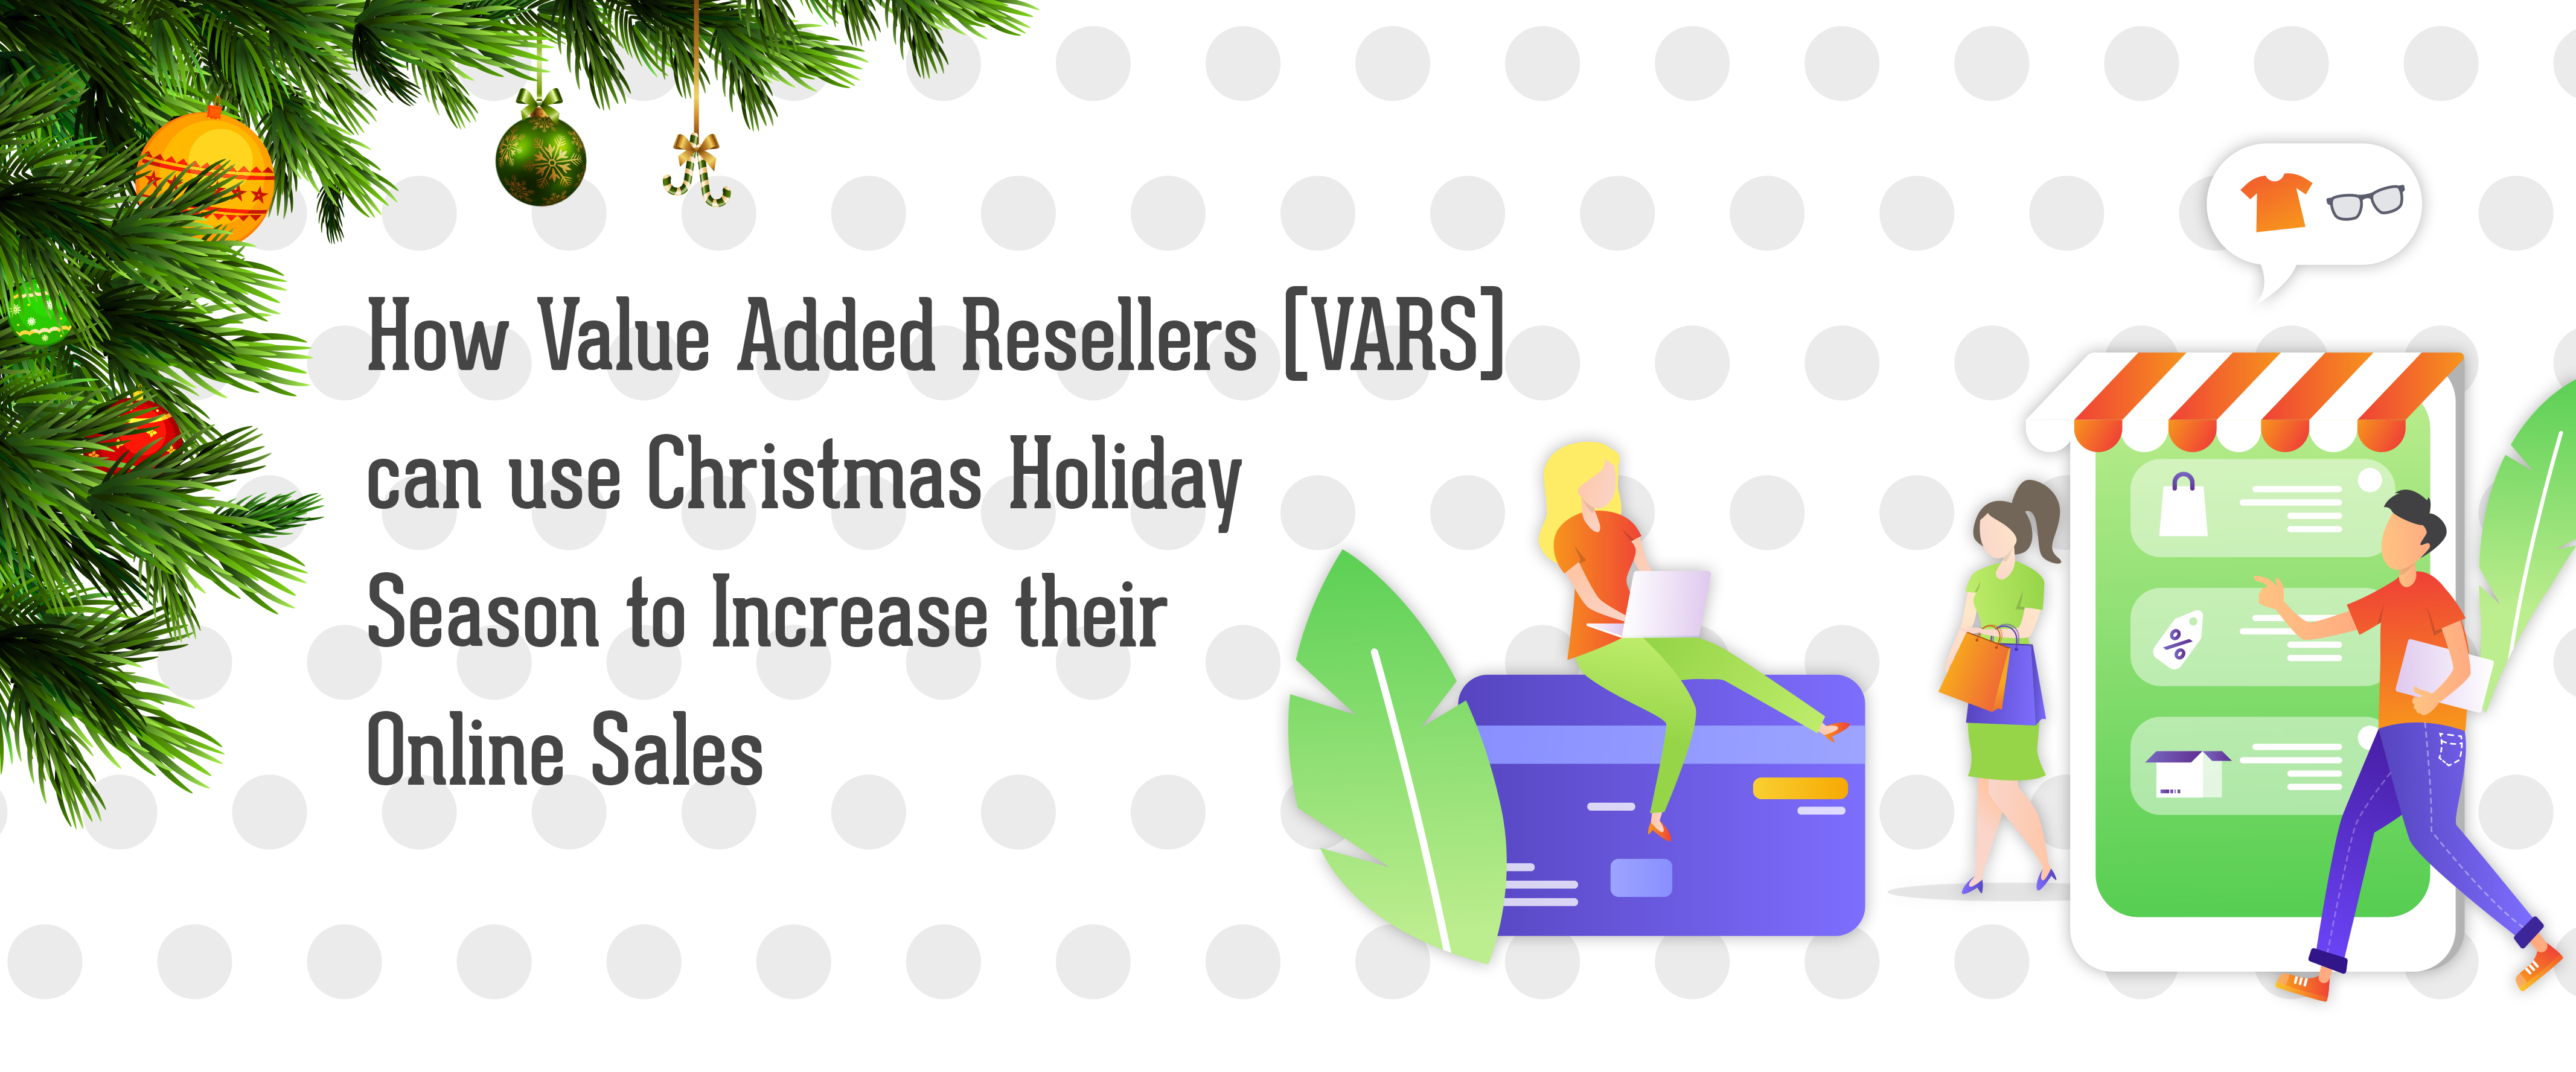 2aab3f6c5d7 How Value Added Resellers (VARS) can use Christmas Holiday Season to ...